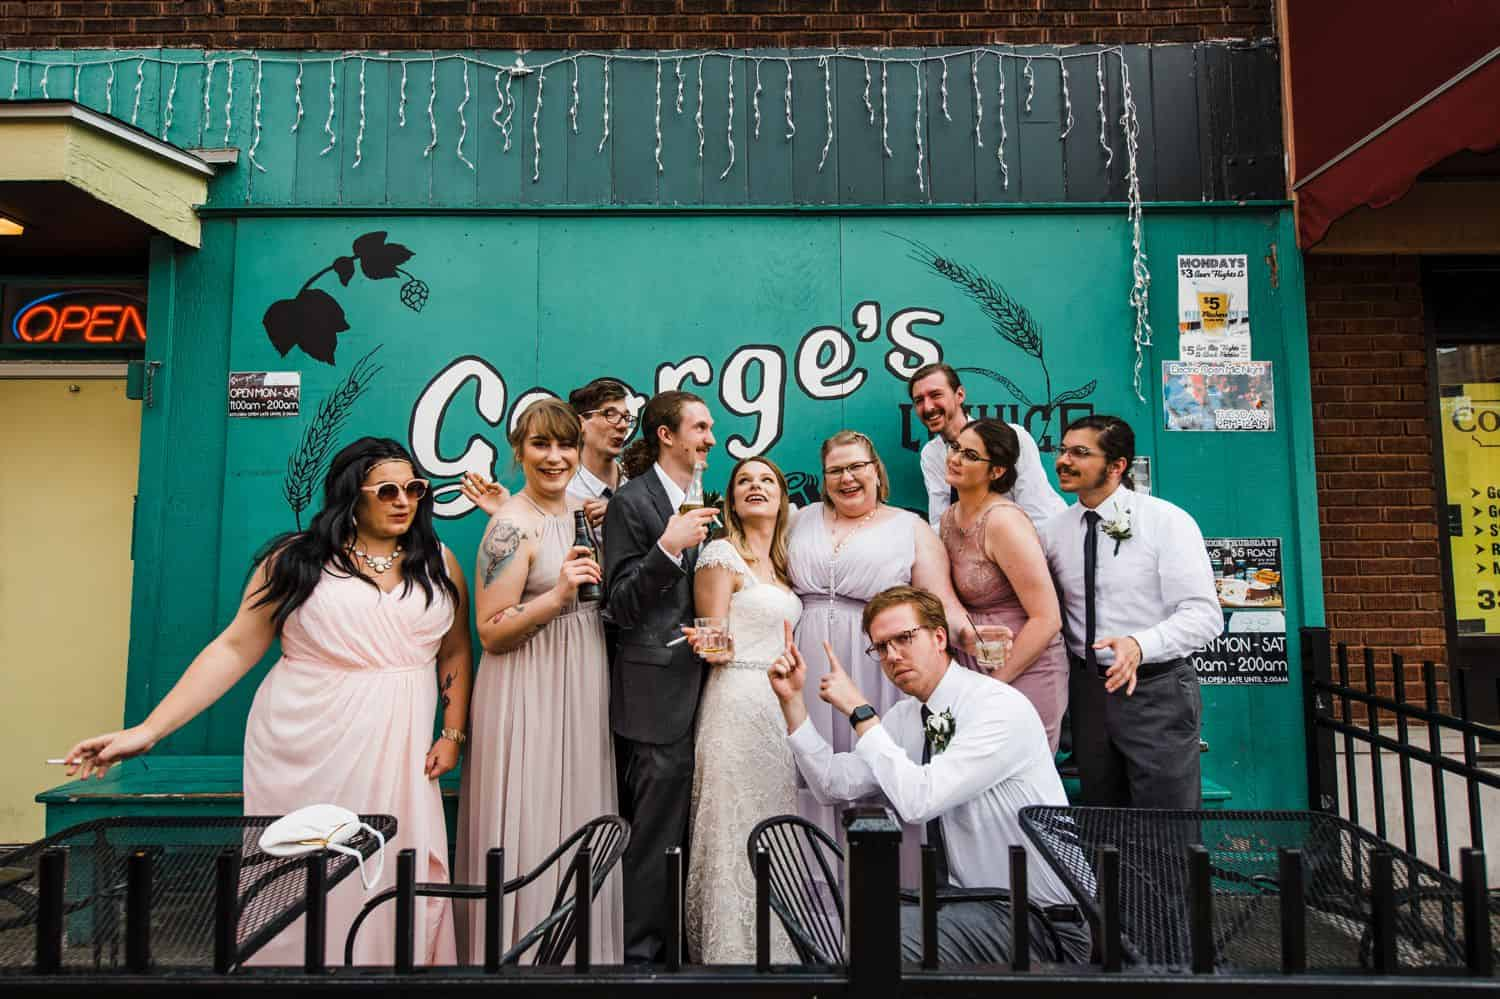 A wedding party does a silly pose in front of a turquoise restaurant wall.